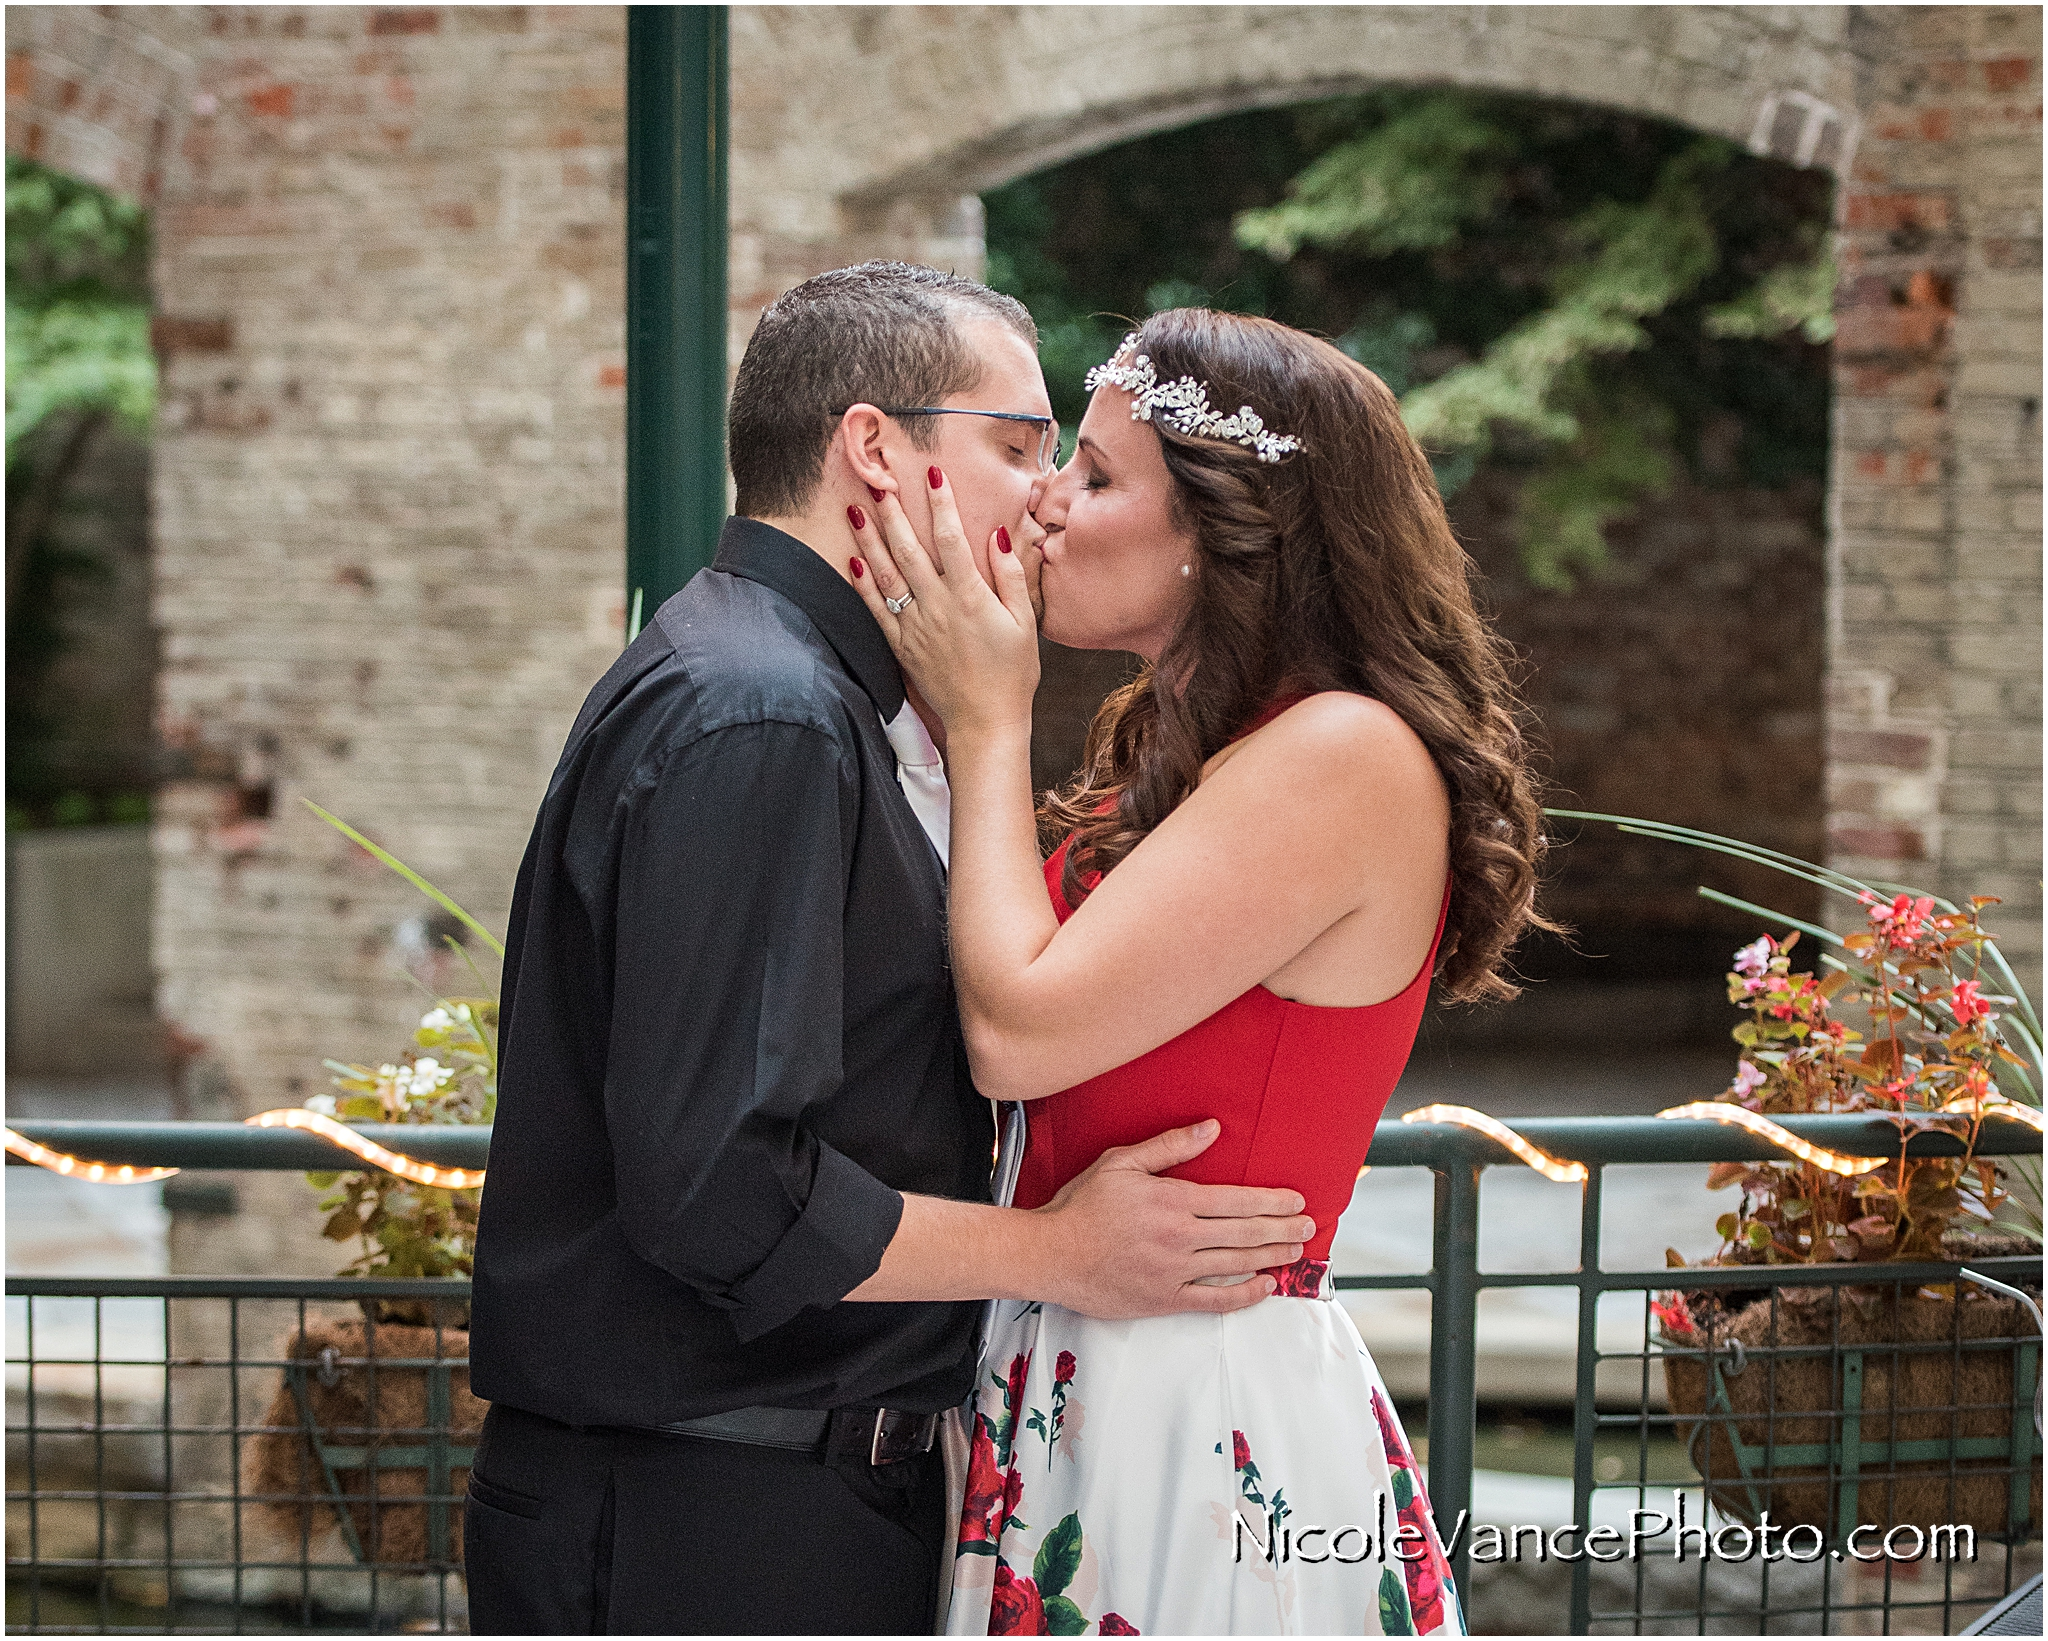 First kiss during their wedding ceremony at Bookbinders on the back patio.